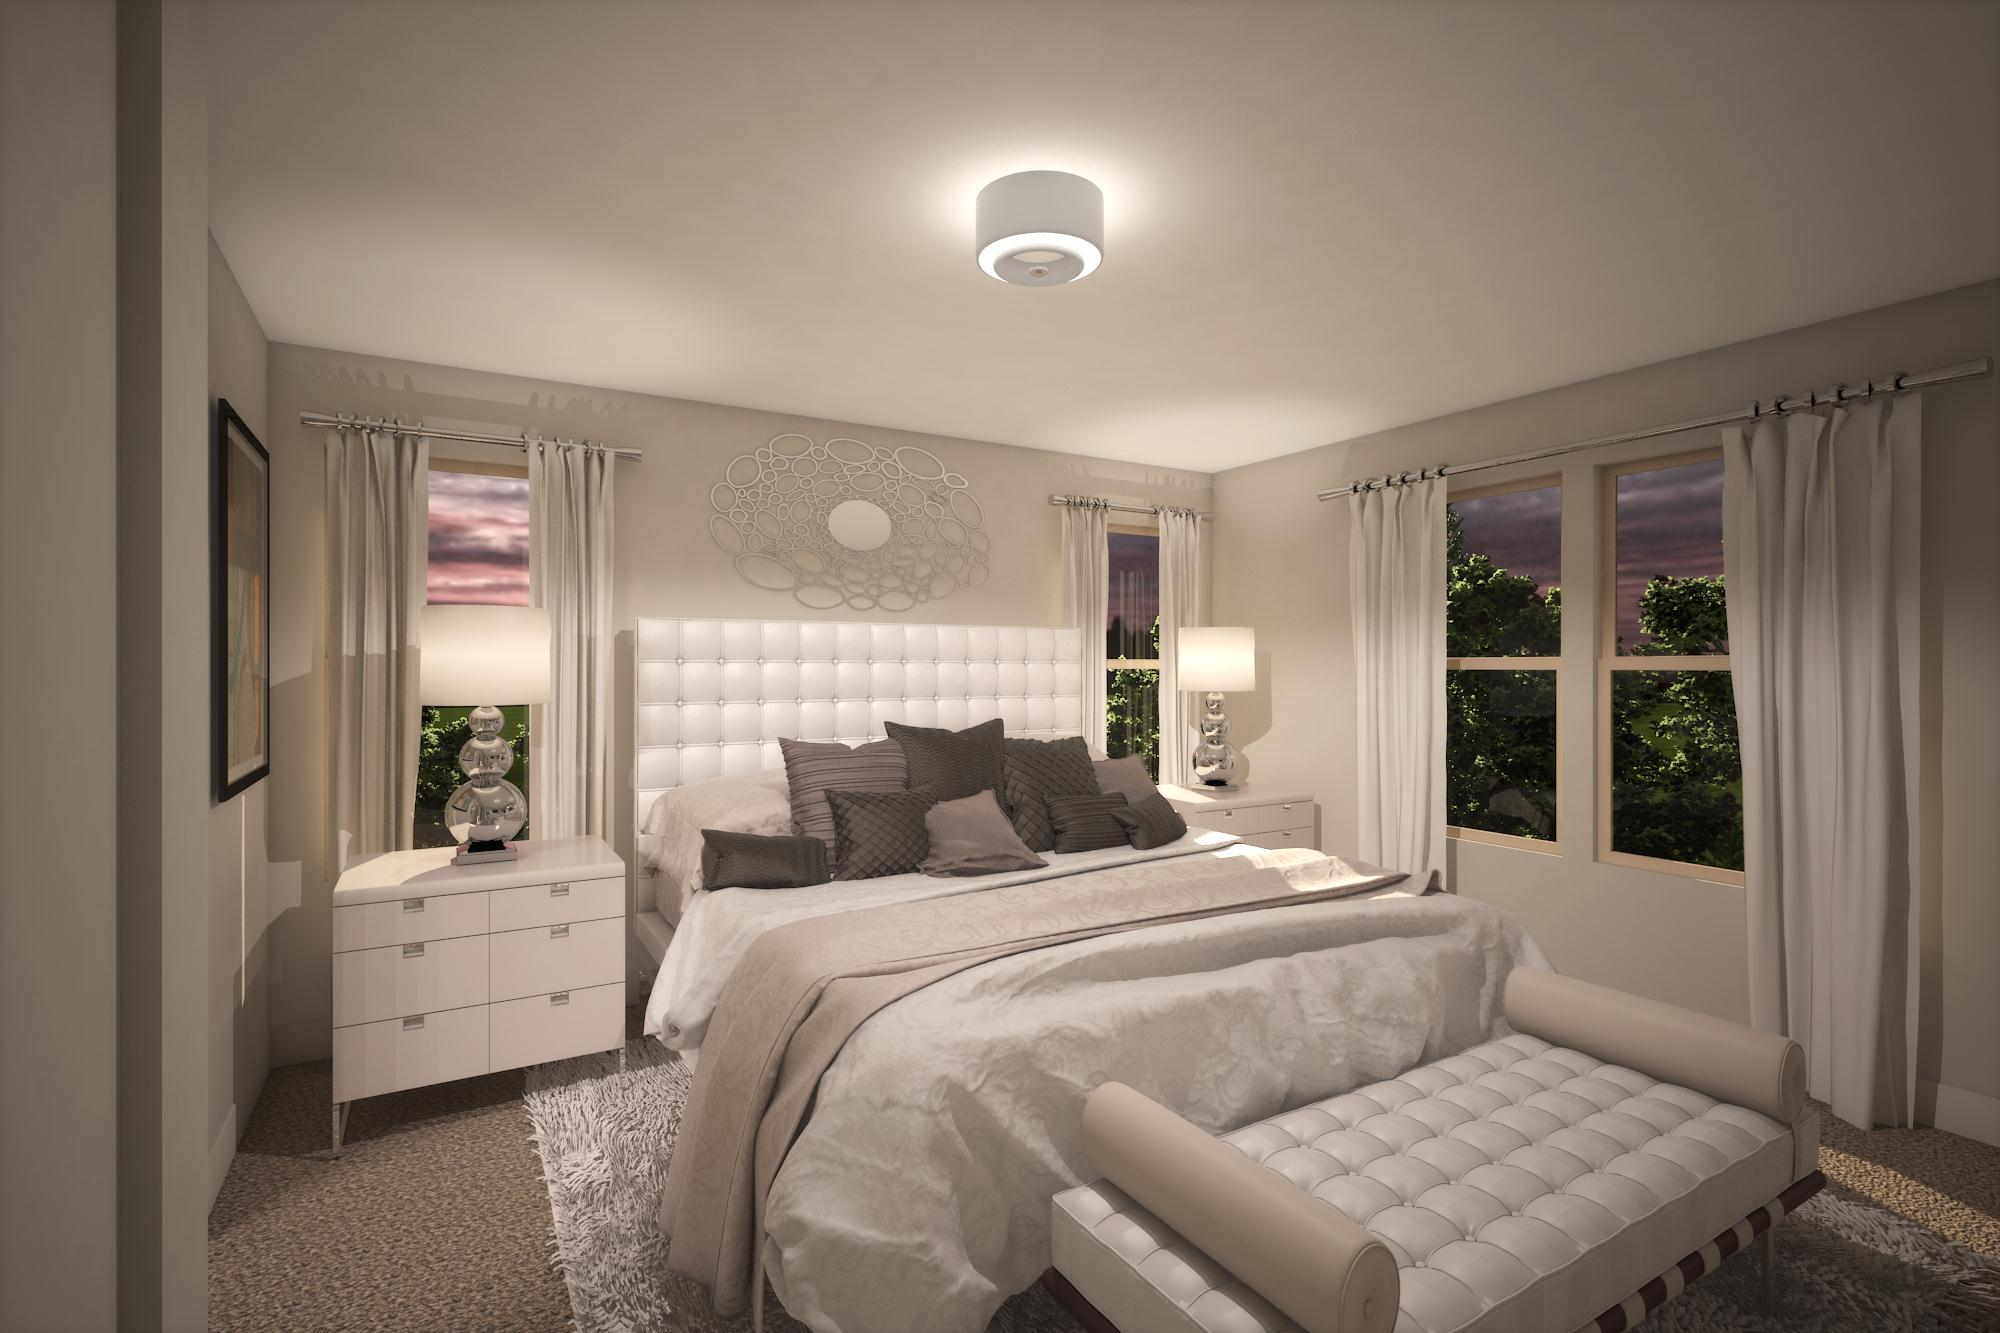 Bedroom featured in the Plan 4- 2179 By Jenuane Communities in Reno, NV